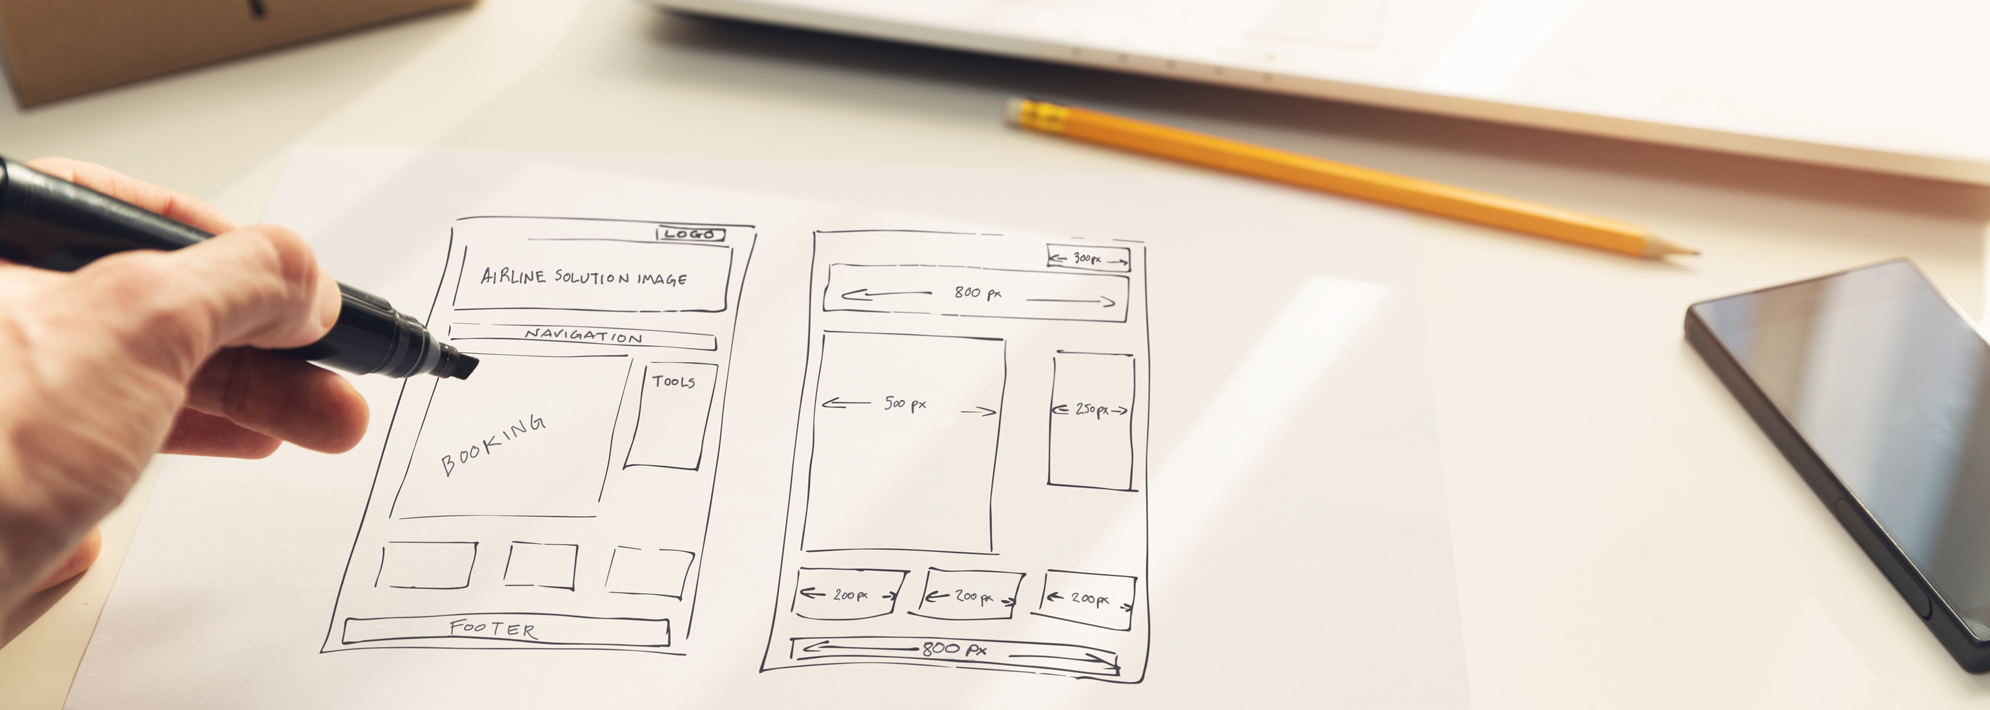 UX Design & UI Development